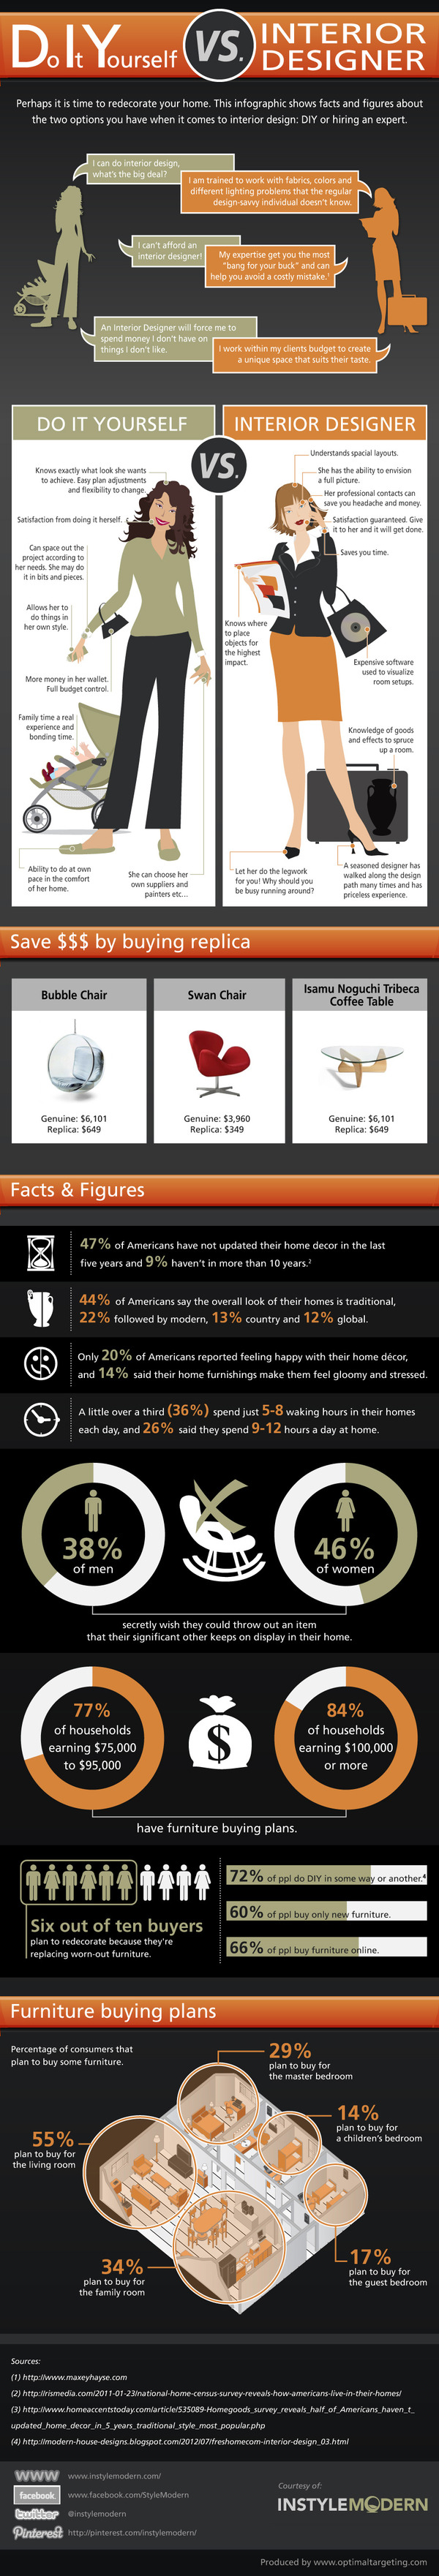 redecorating-infographic (1)